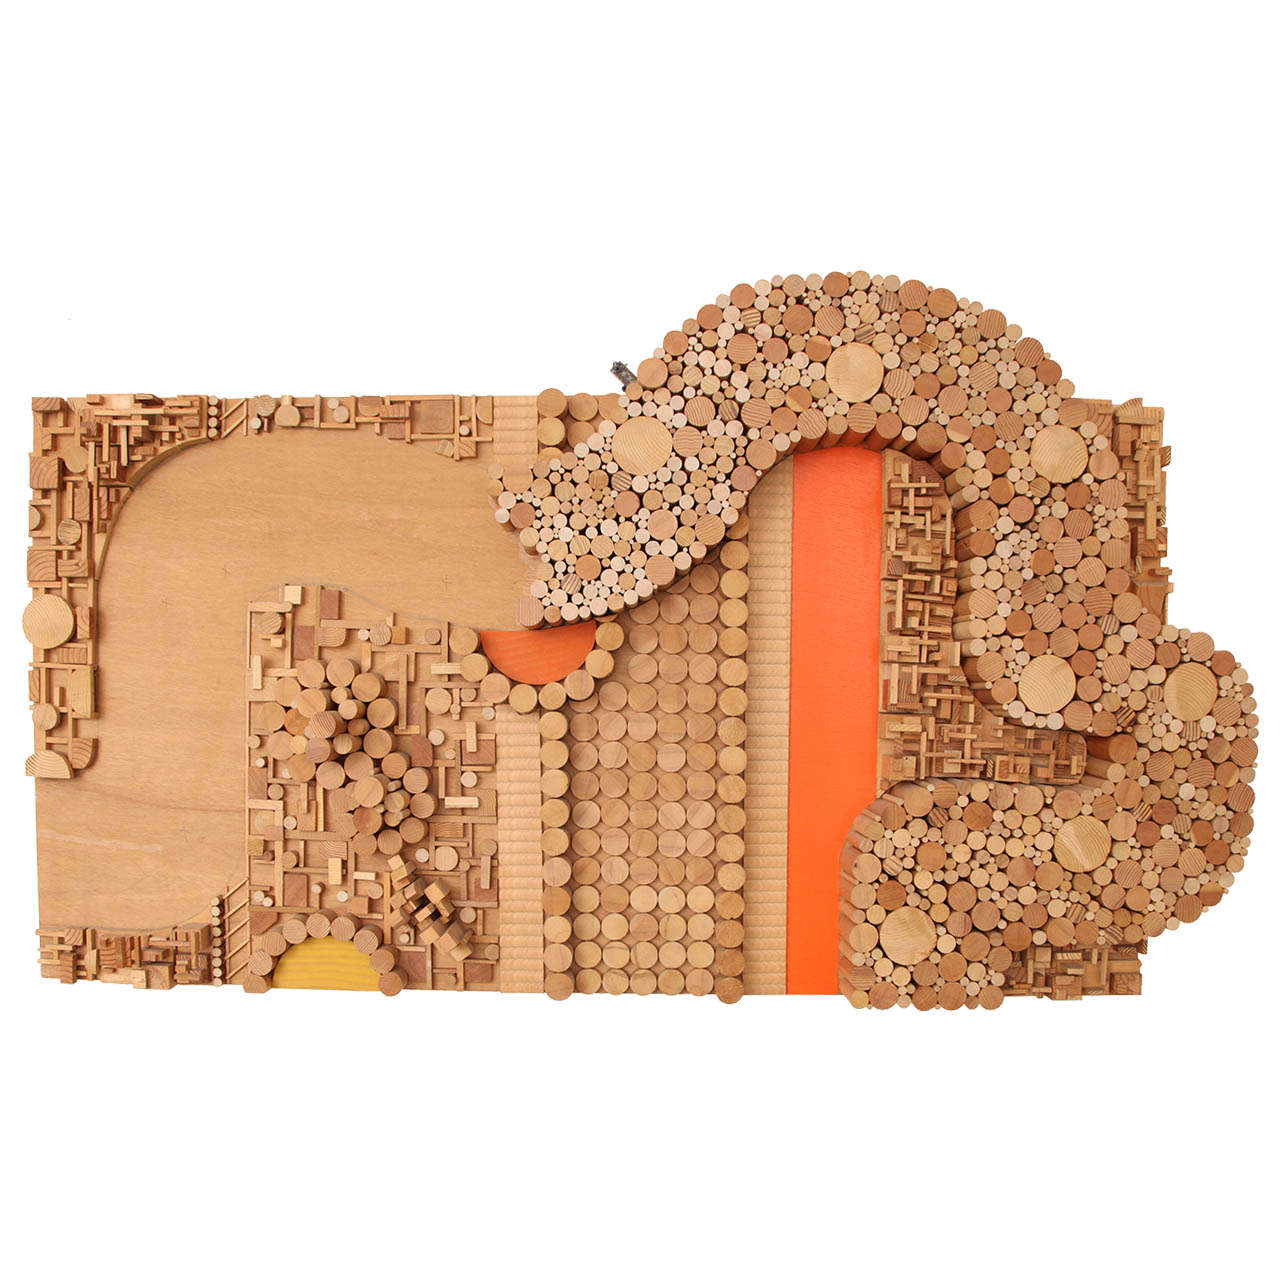 1970s Architectonic Wood Wall Sculpture